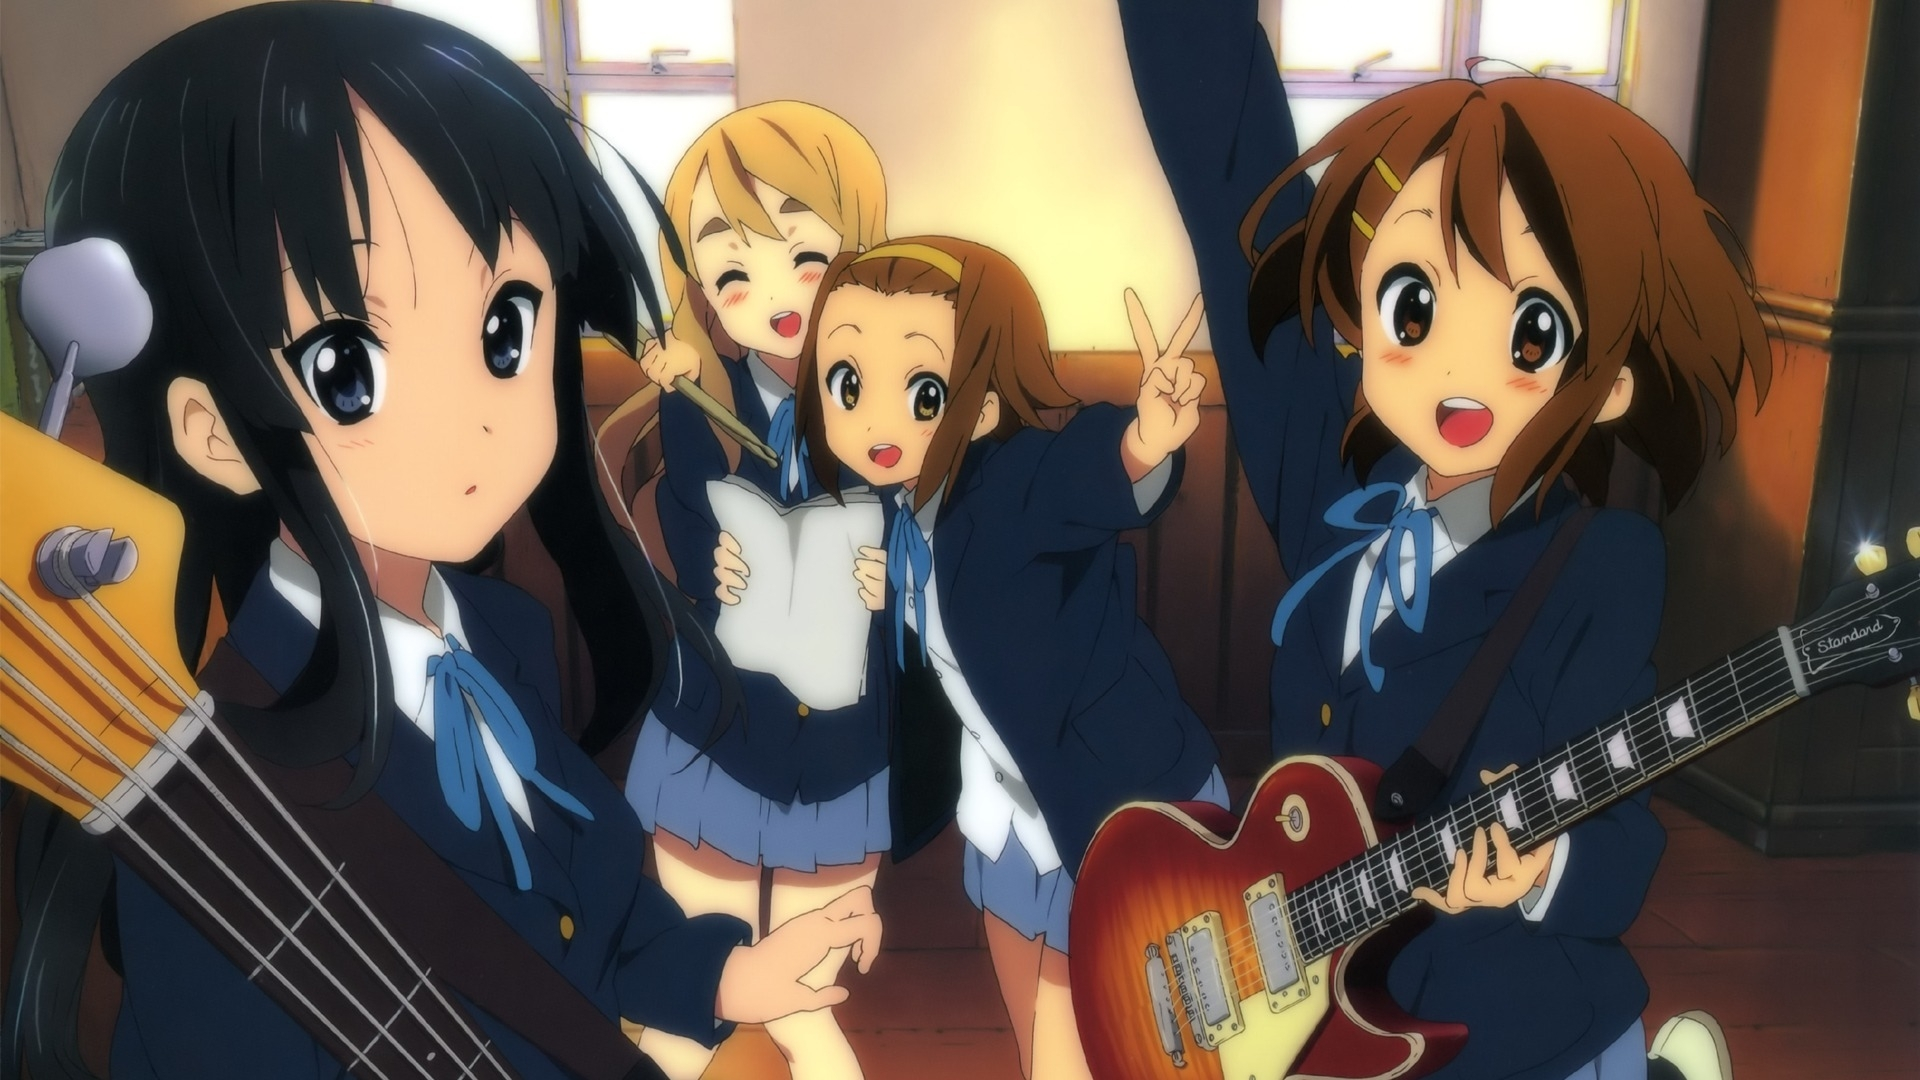 k-on! full hd wallpaper and background image | 1920x1080 | id:392325